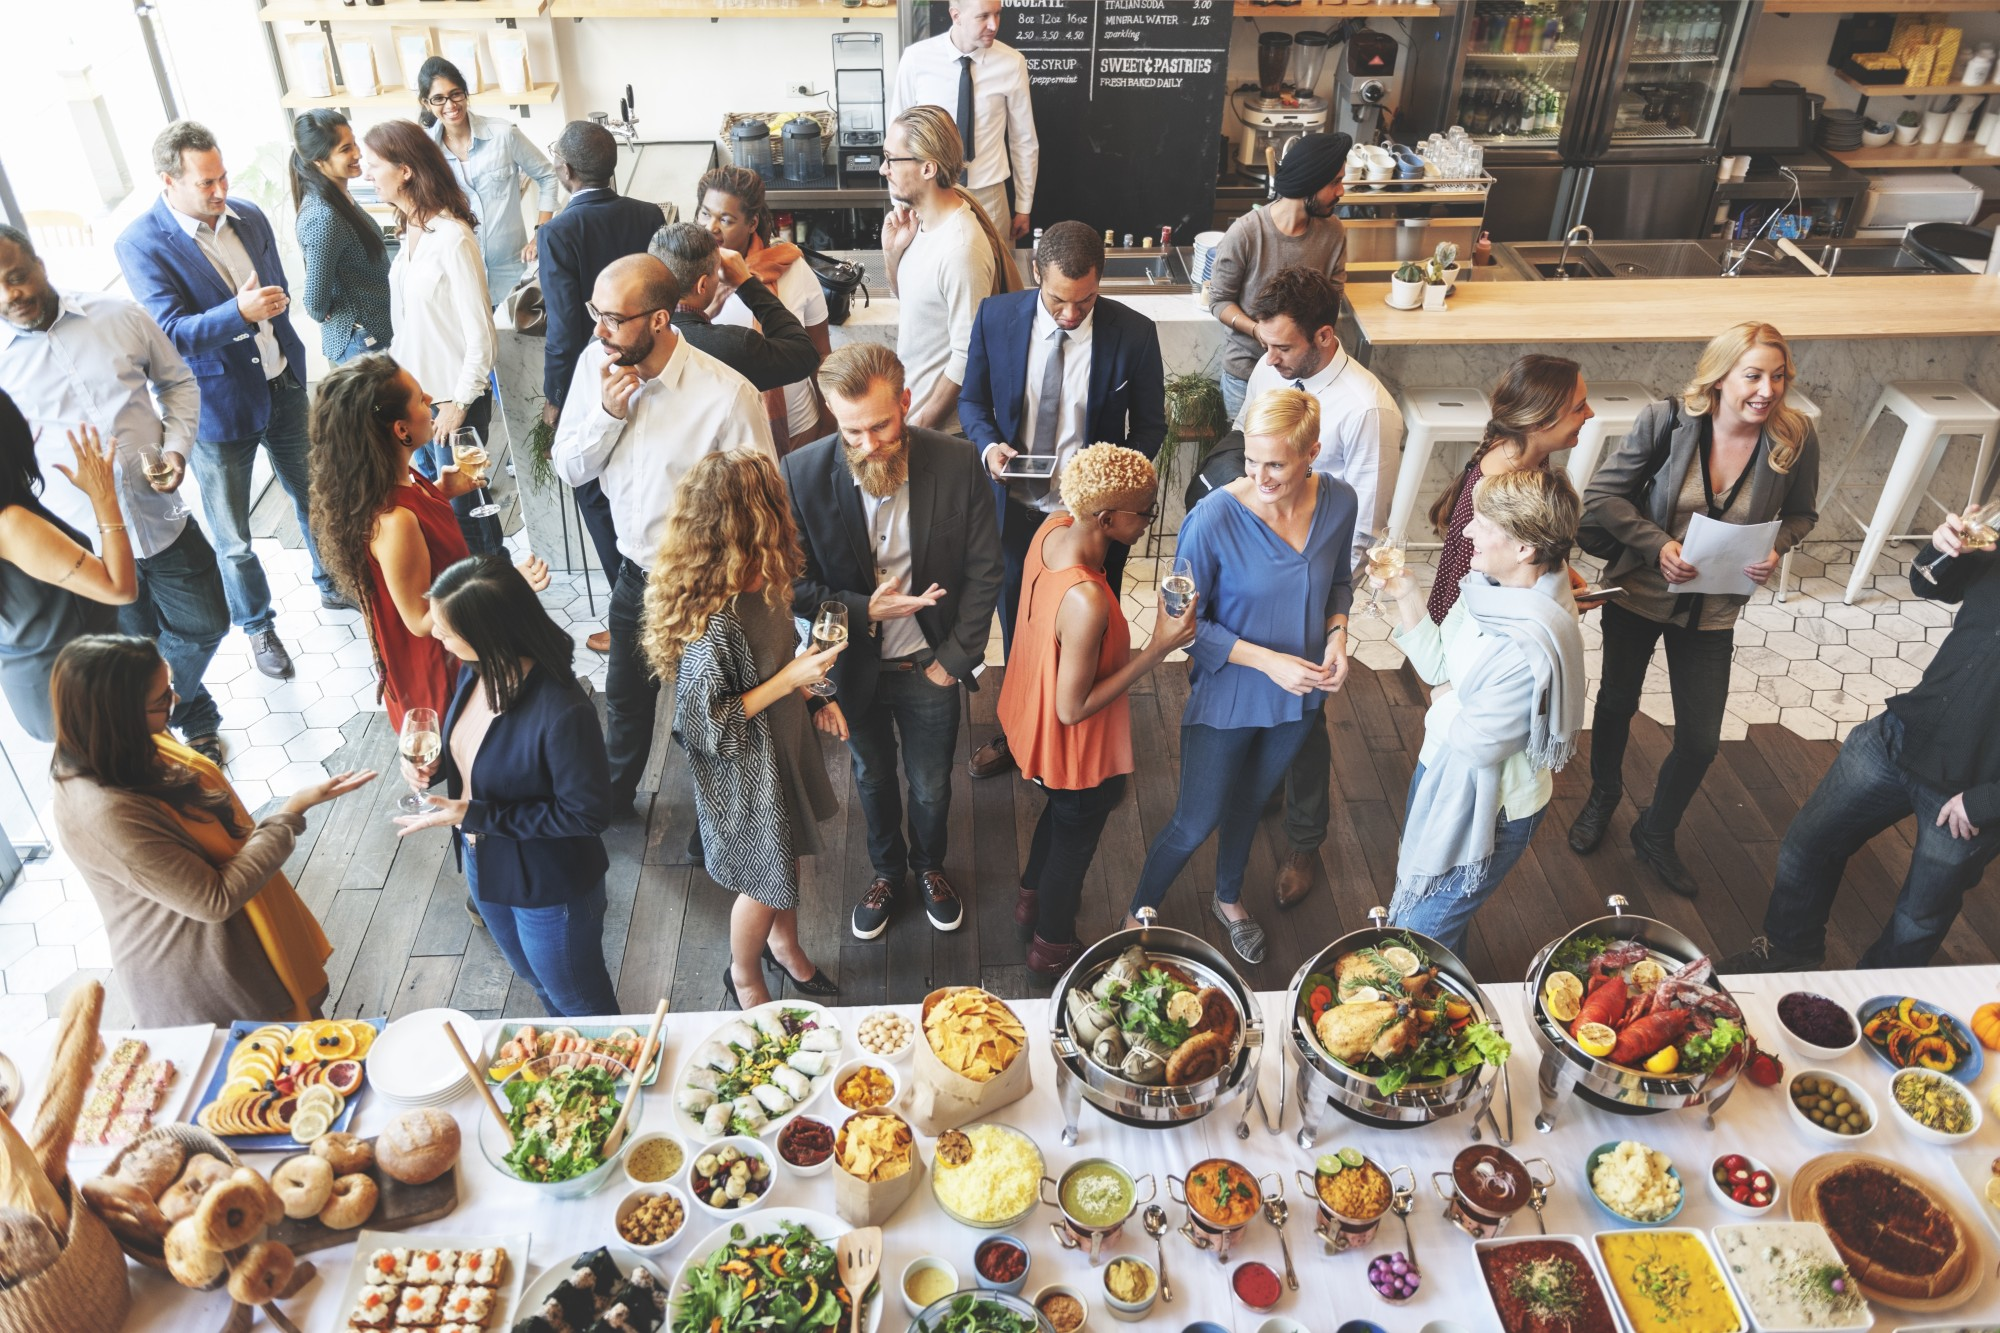 Plan beyond your opening line at networking events